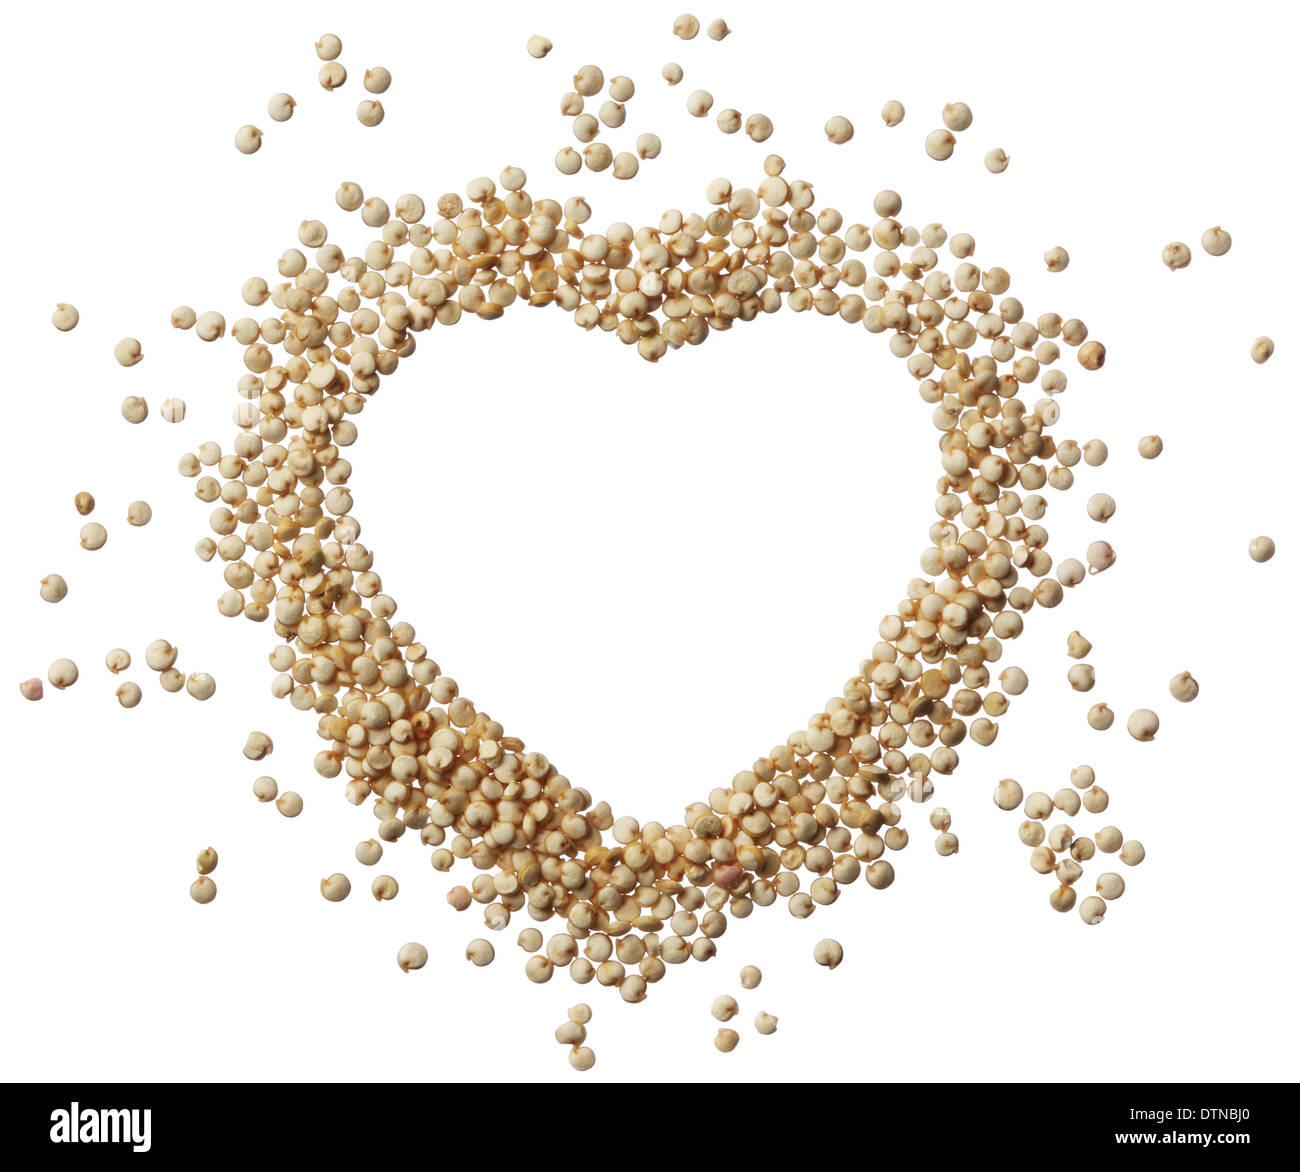 Heart of quinoa grain isolated on a white background - Stock Image